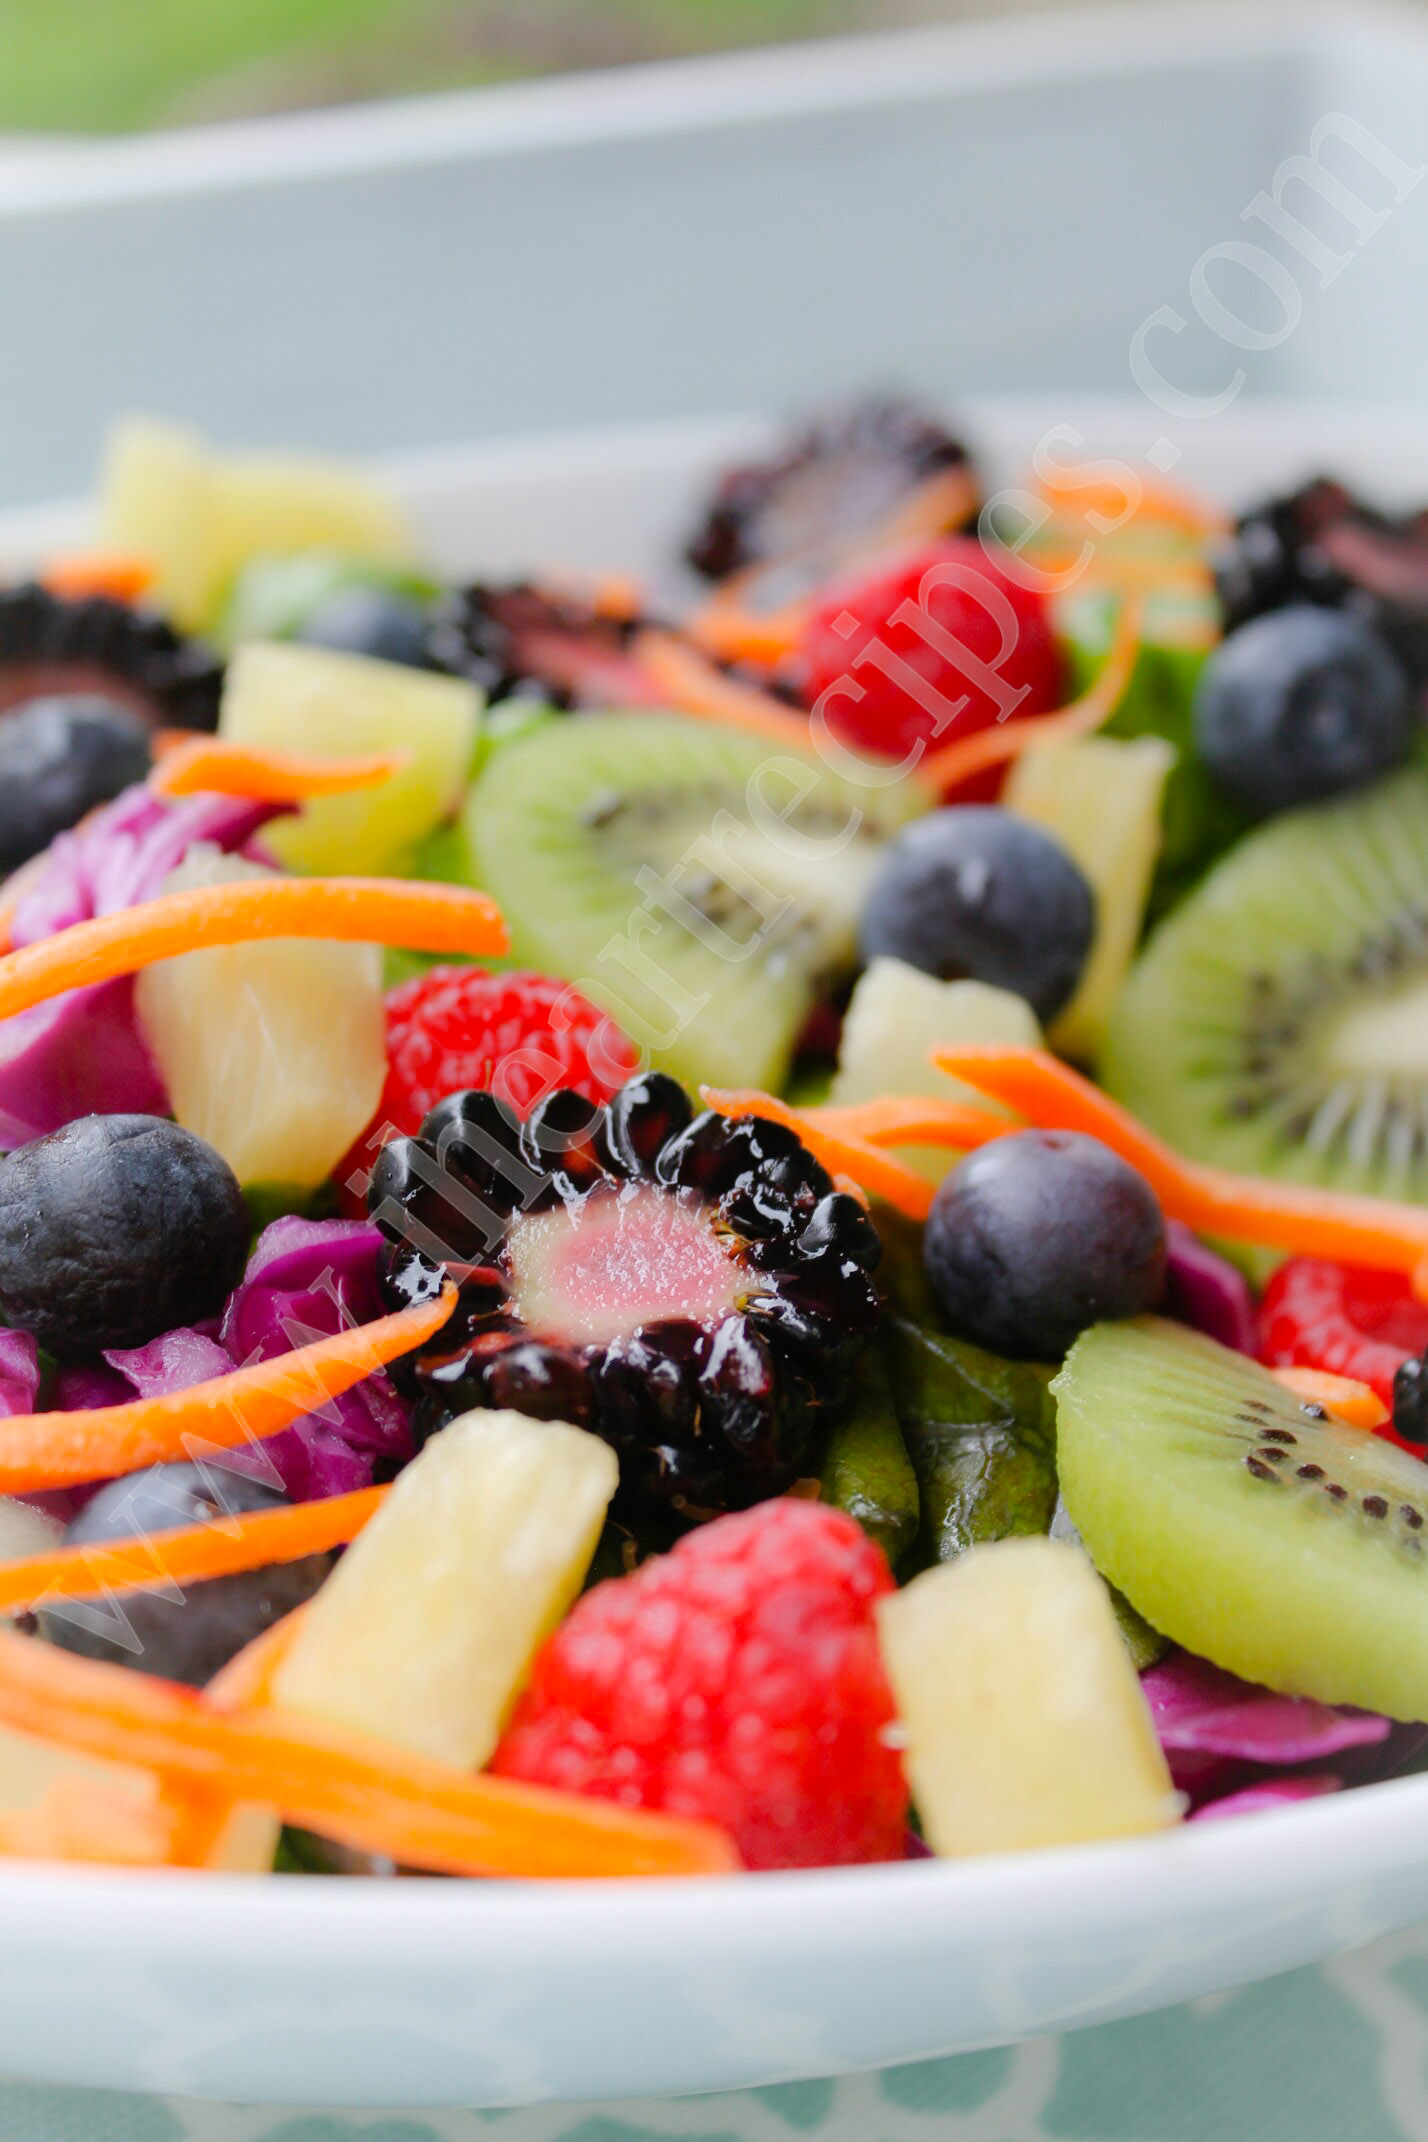 Juicy fresh blackberries, strawberries and pineapple freshen up this delicious spring salad